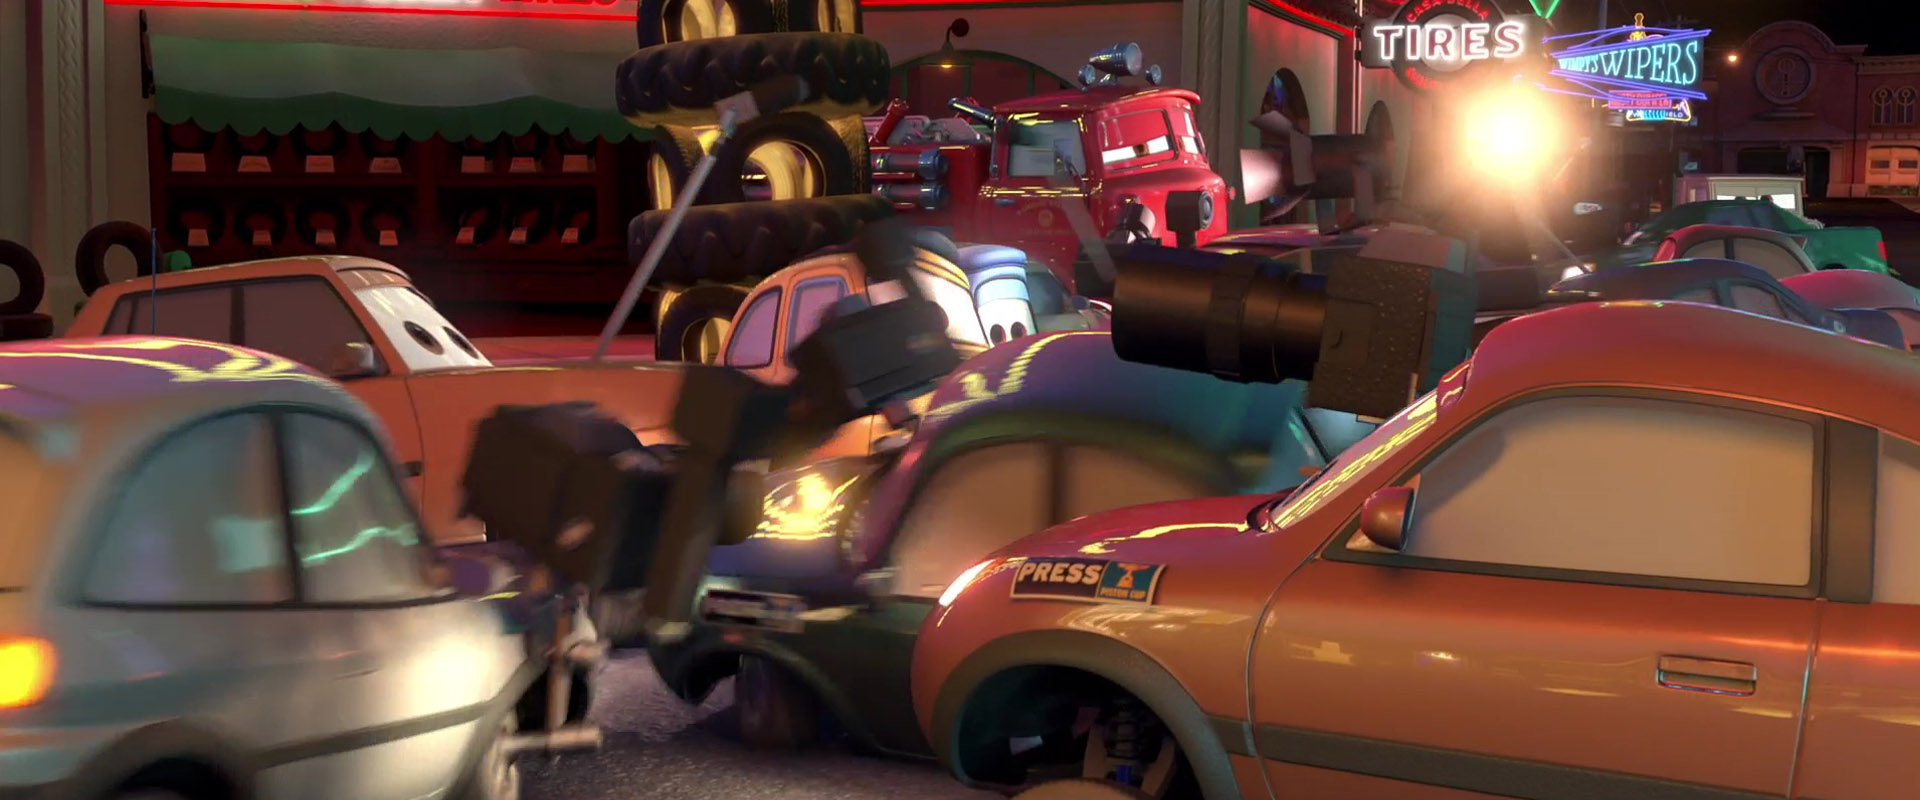 hooman personnage character pixar disney cars